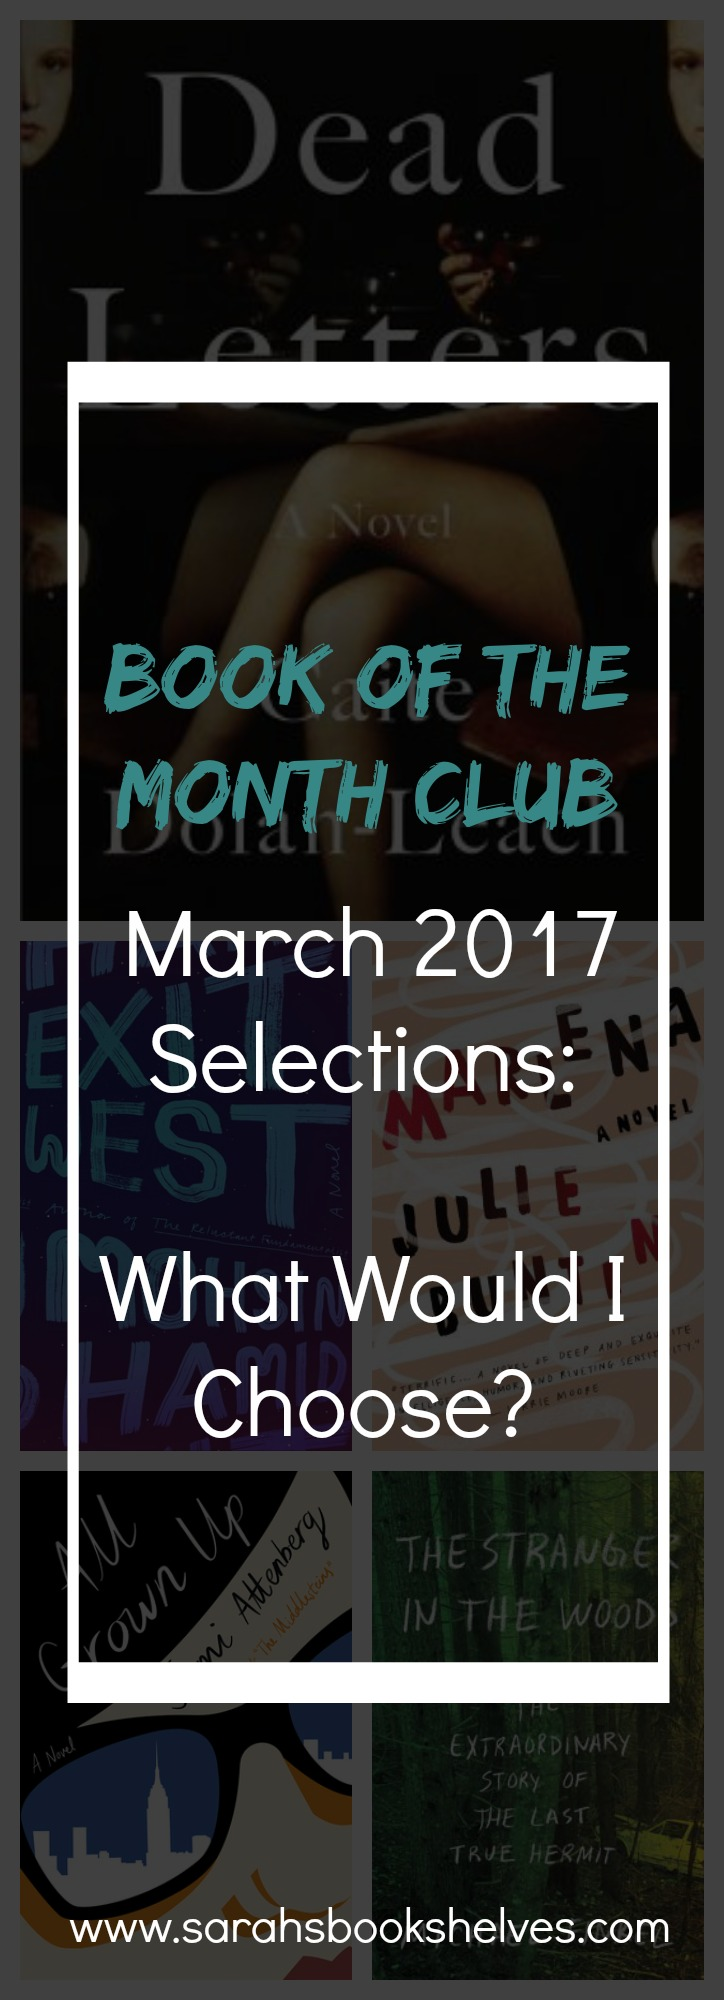 I've read 2 of the March 2017 Book of the Month Club selections! #BOTM